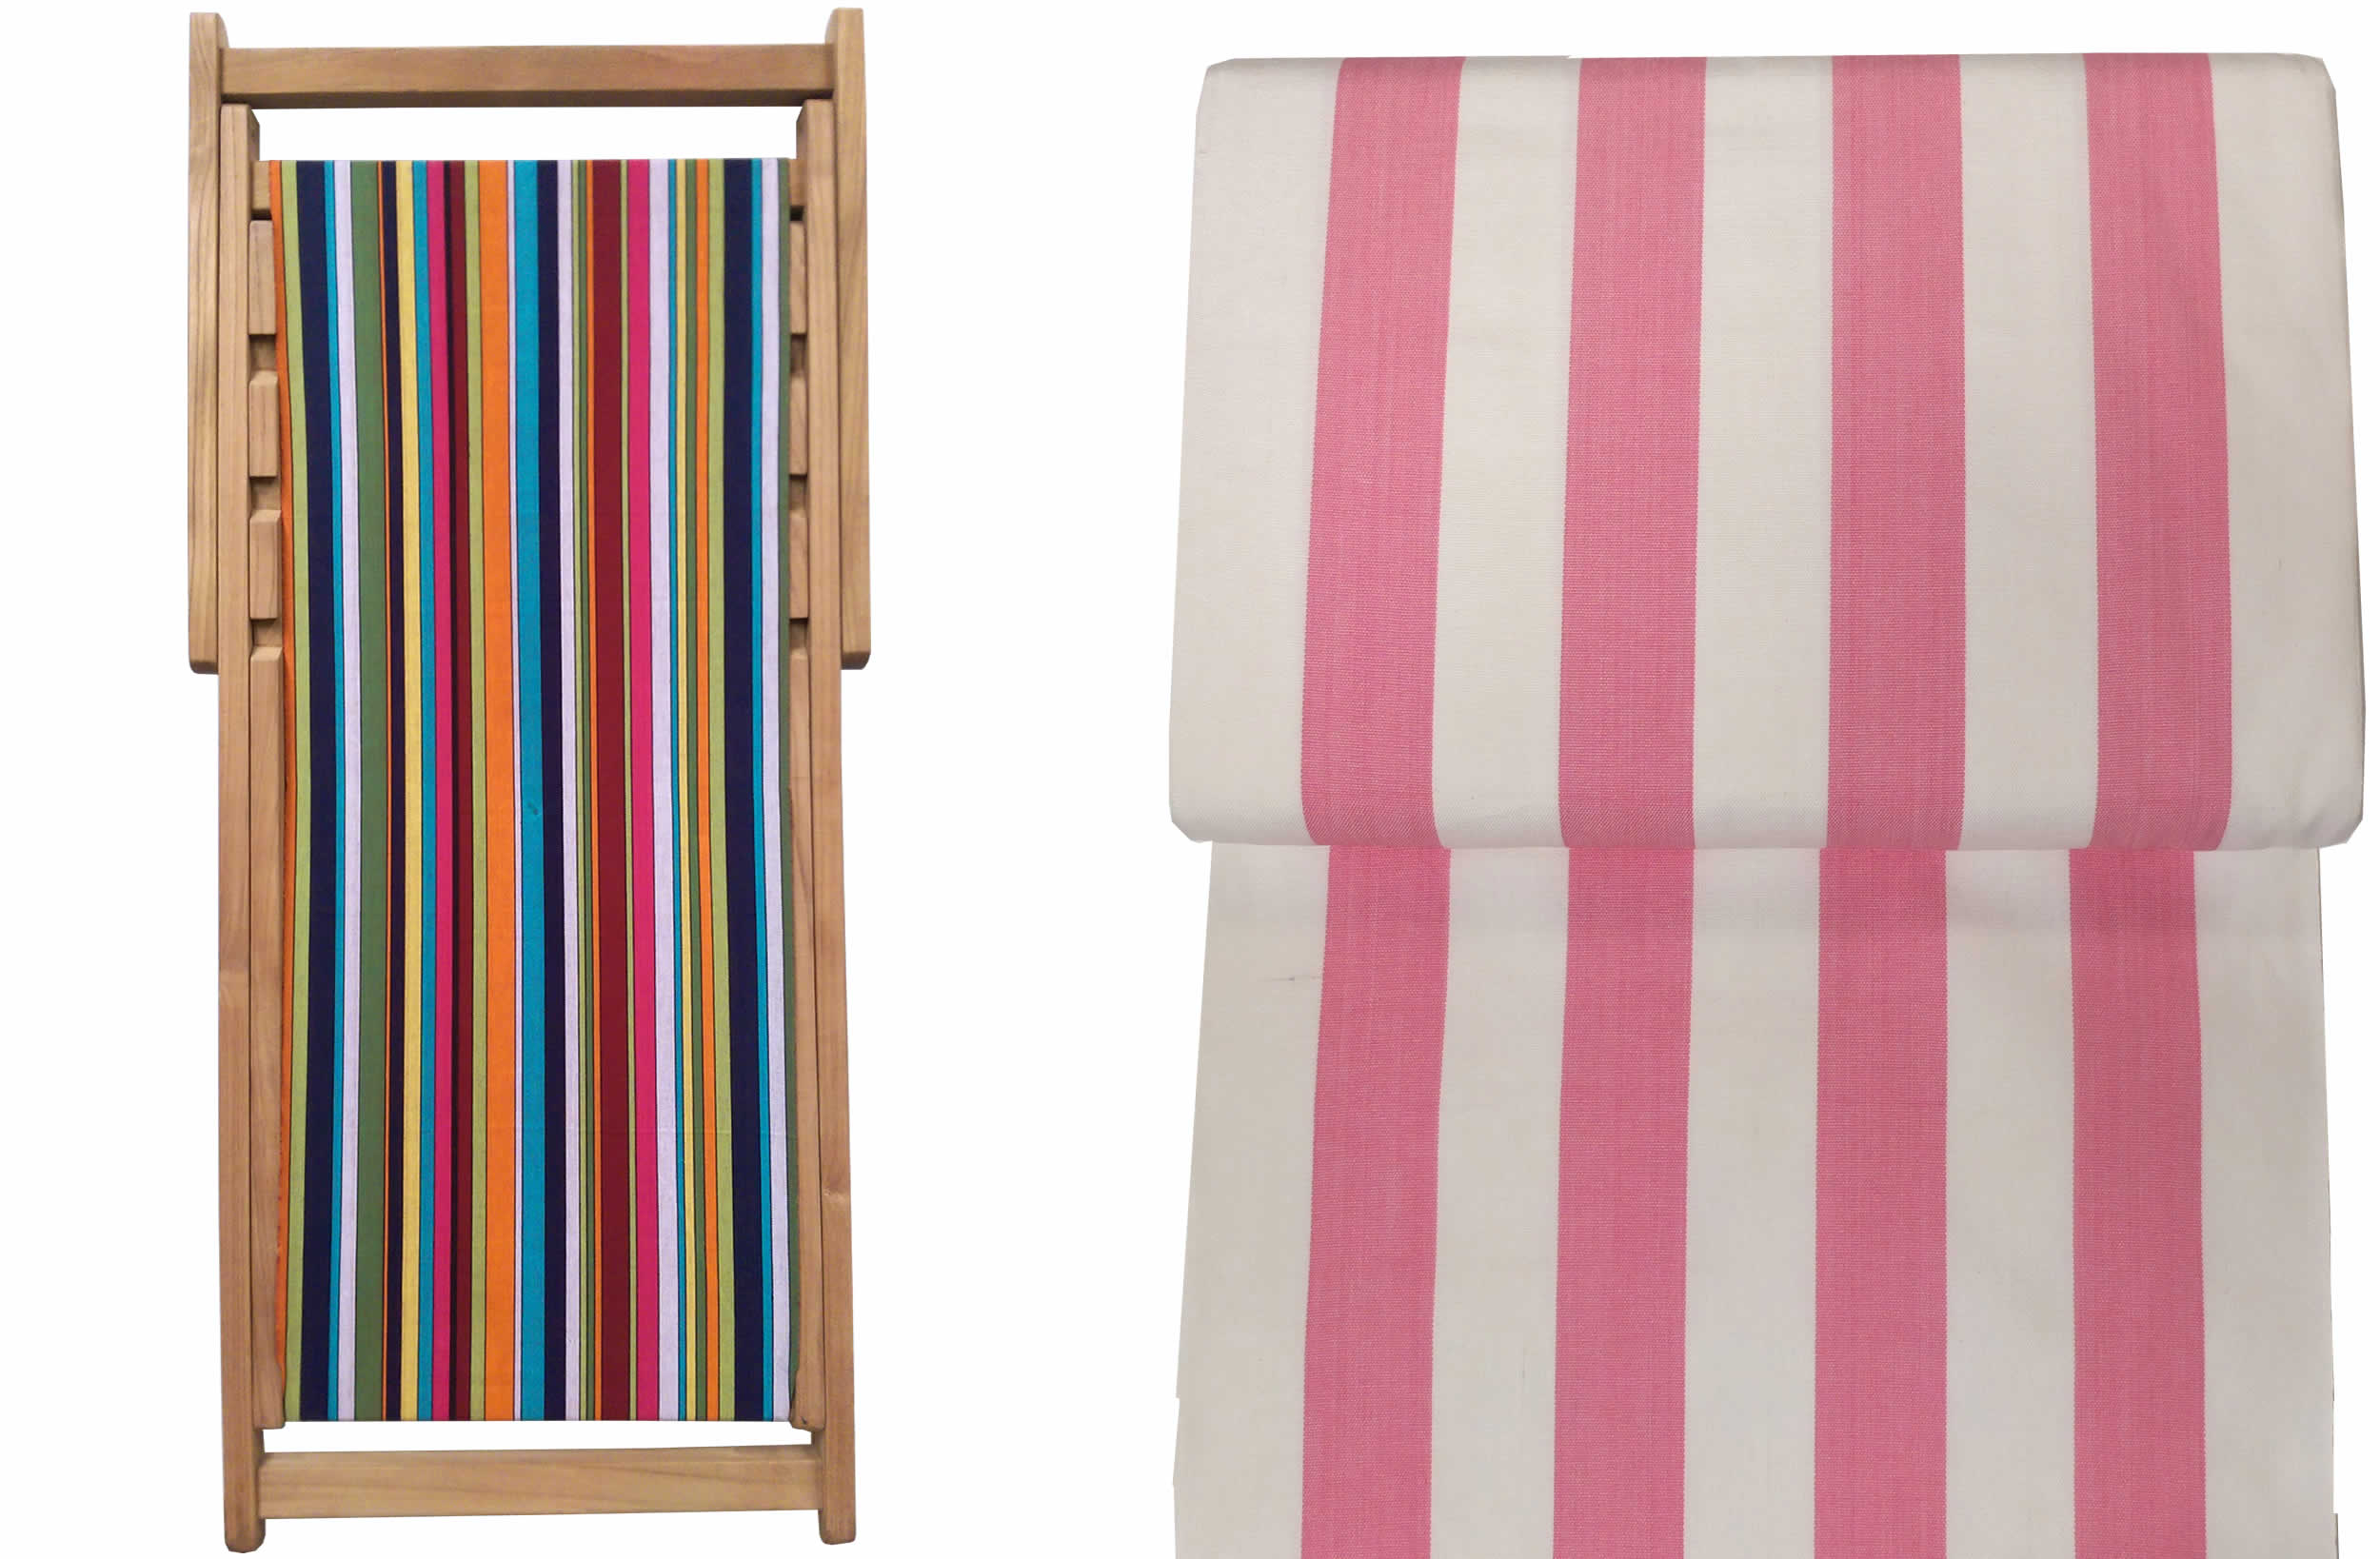 Discus  Pink and White Striped Teak Deck Chairs